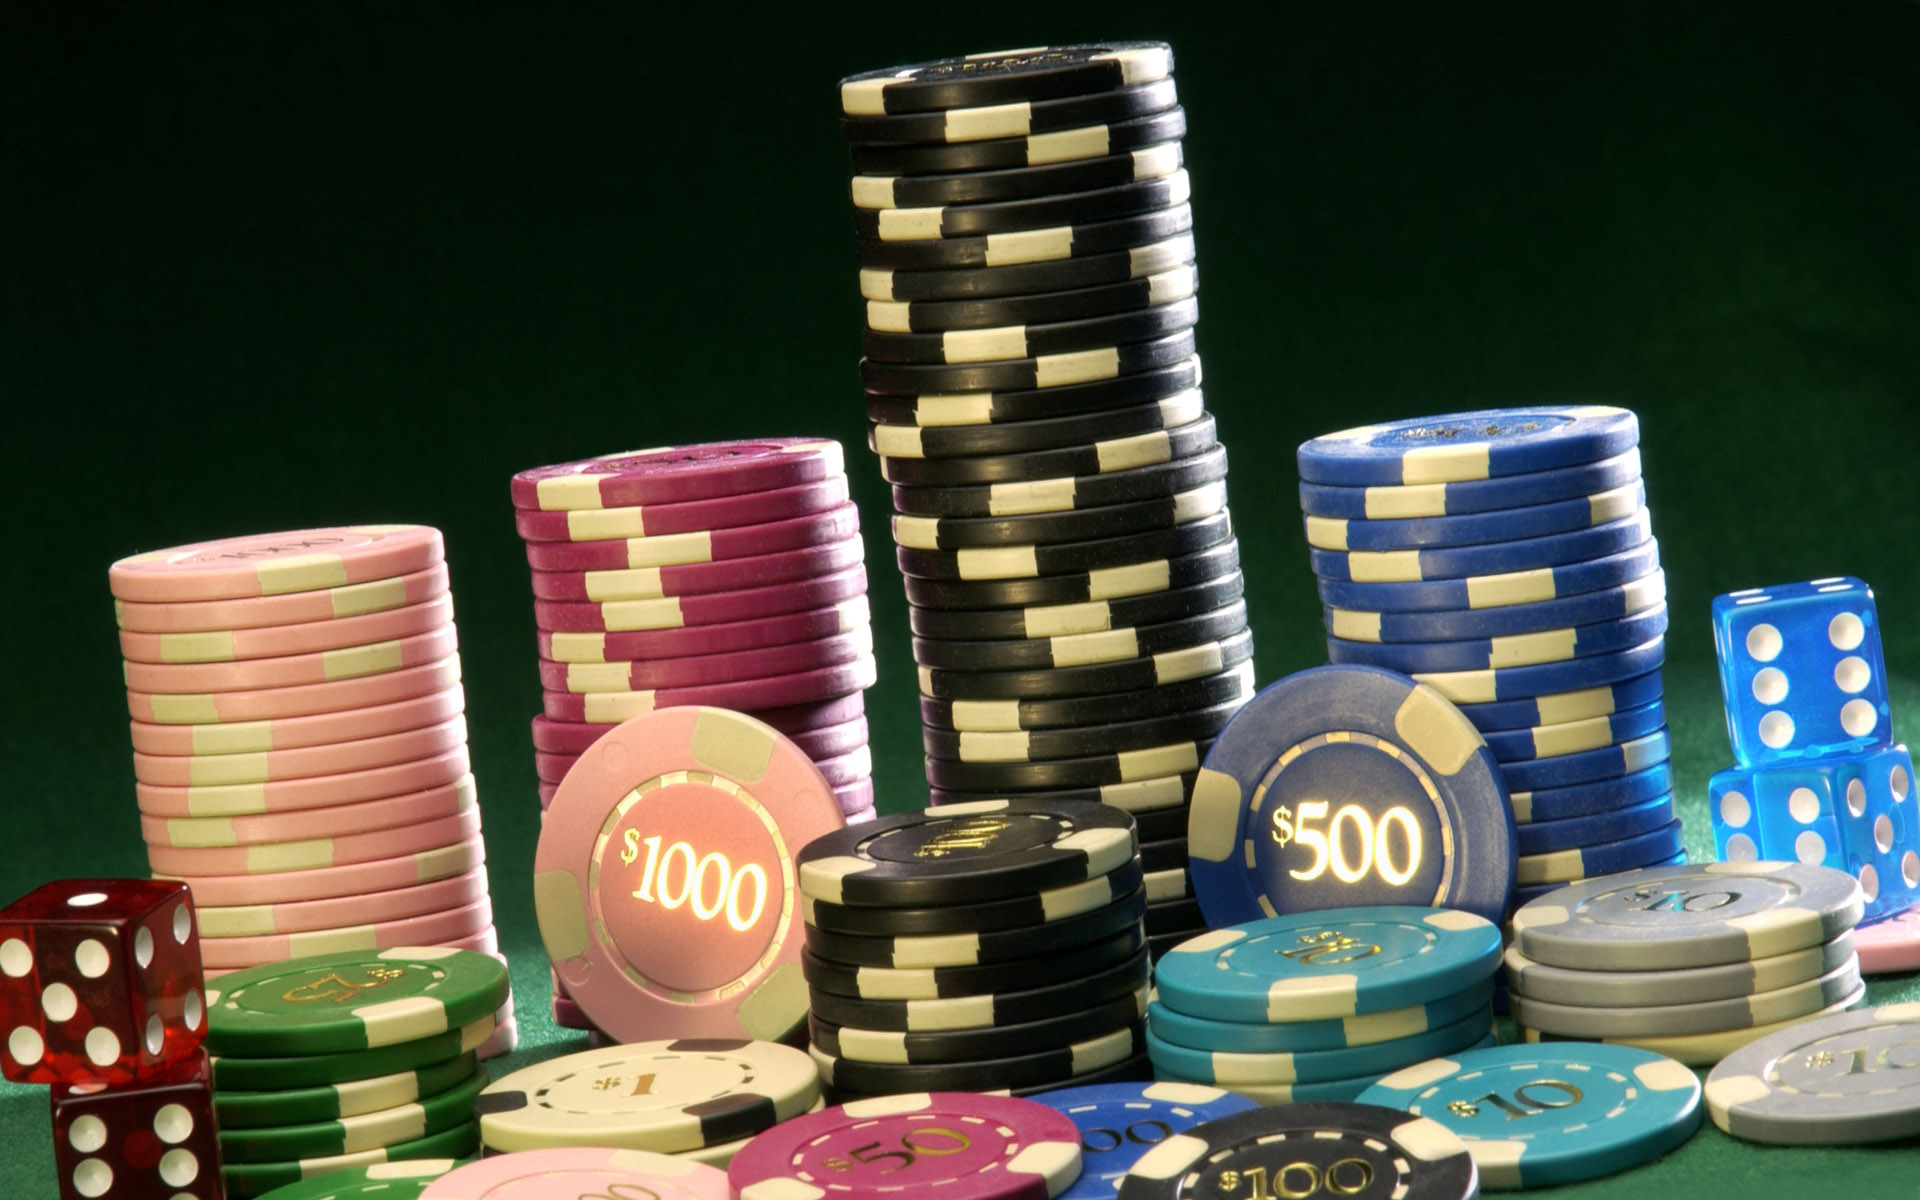 Download the Stack of Poker Chips Wallpaper, Stack of Poker Chips ...